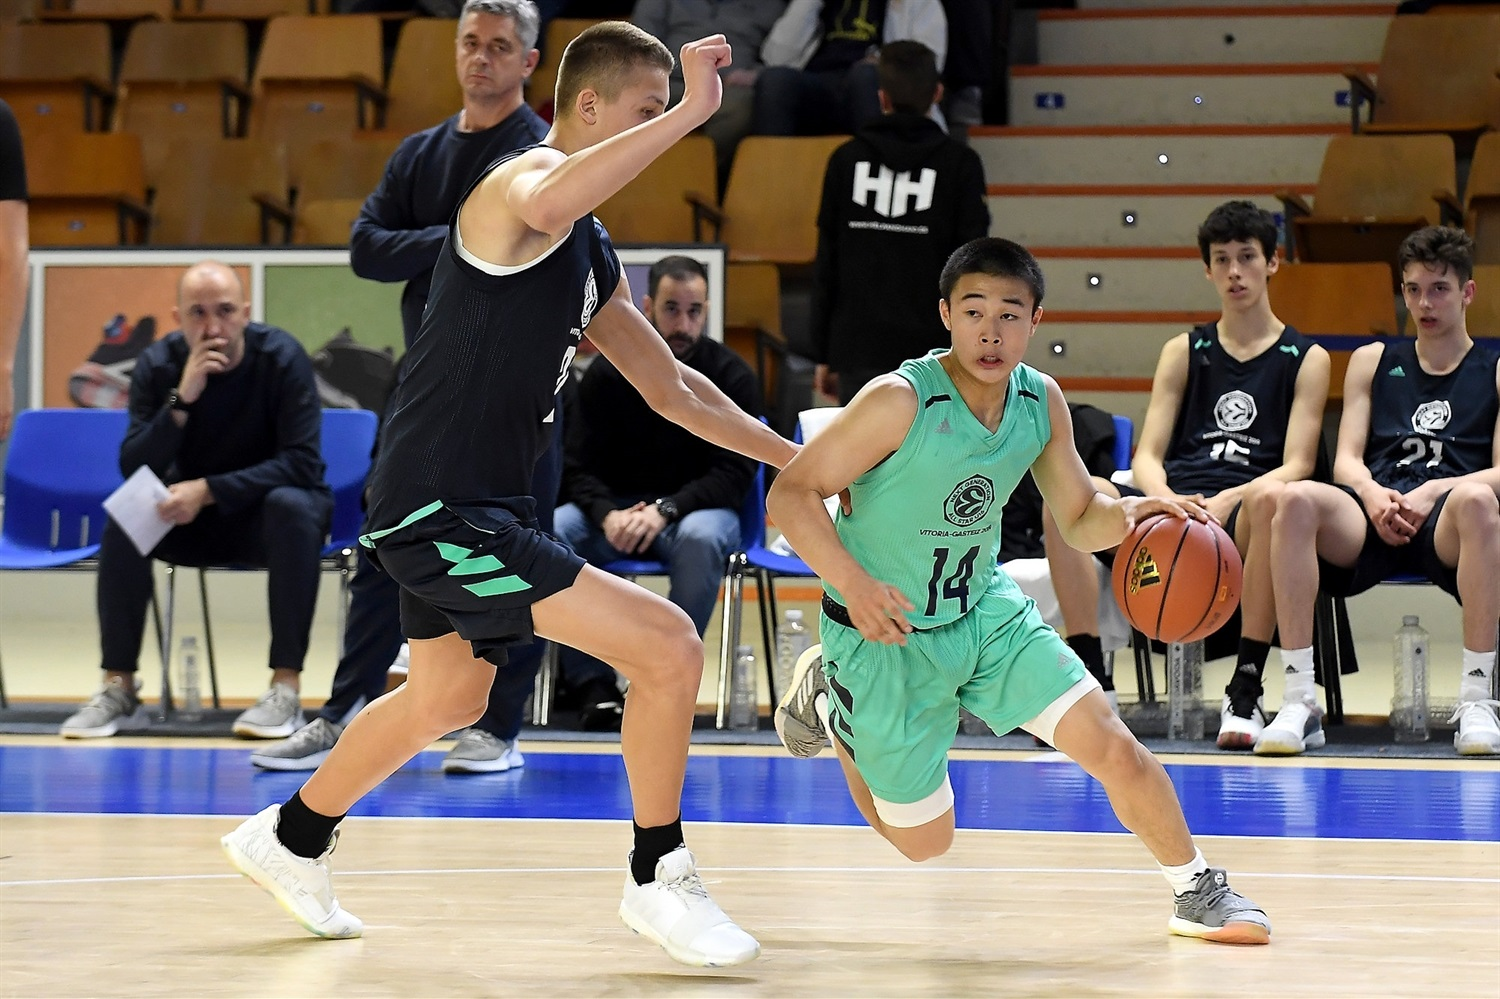 Ryosei Sato of Team Asia - International All Star Game presented by adidas - Final Four Vitoria-Gasteiz 2019 - J18